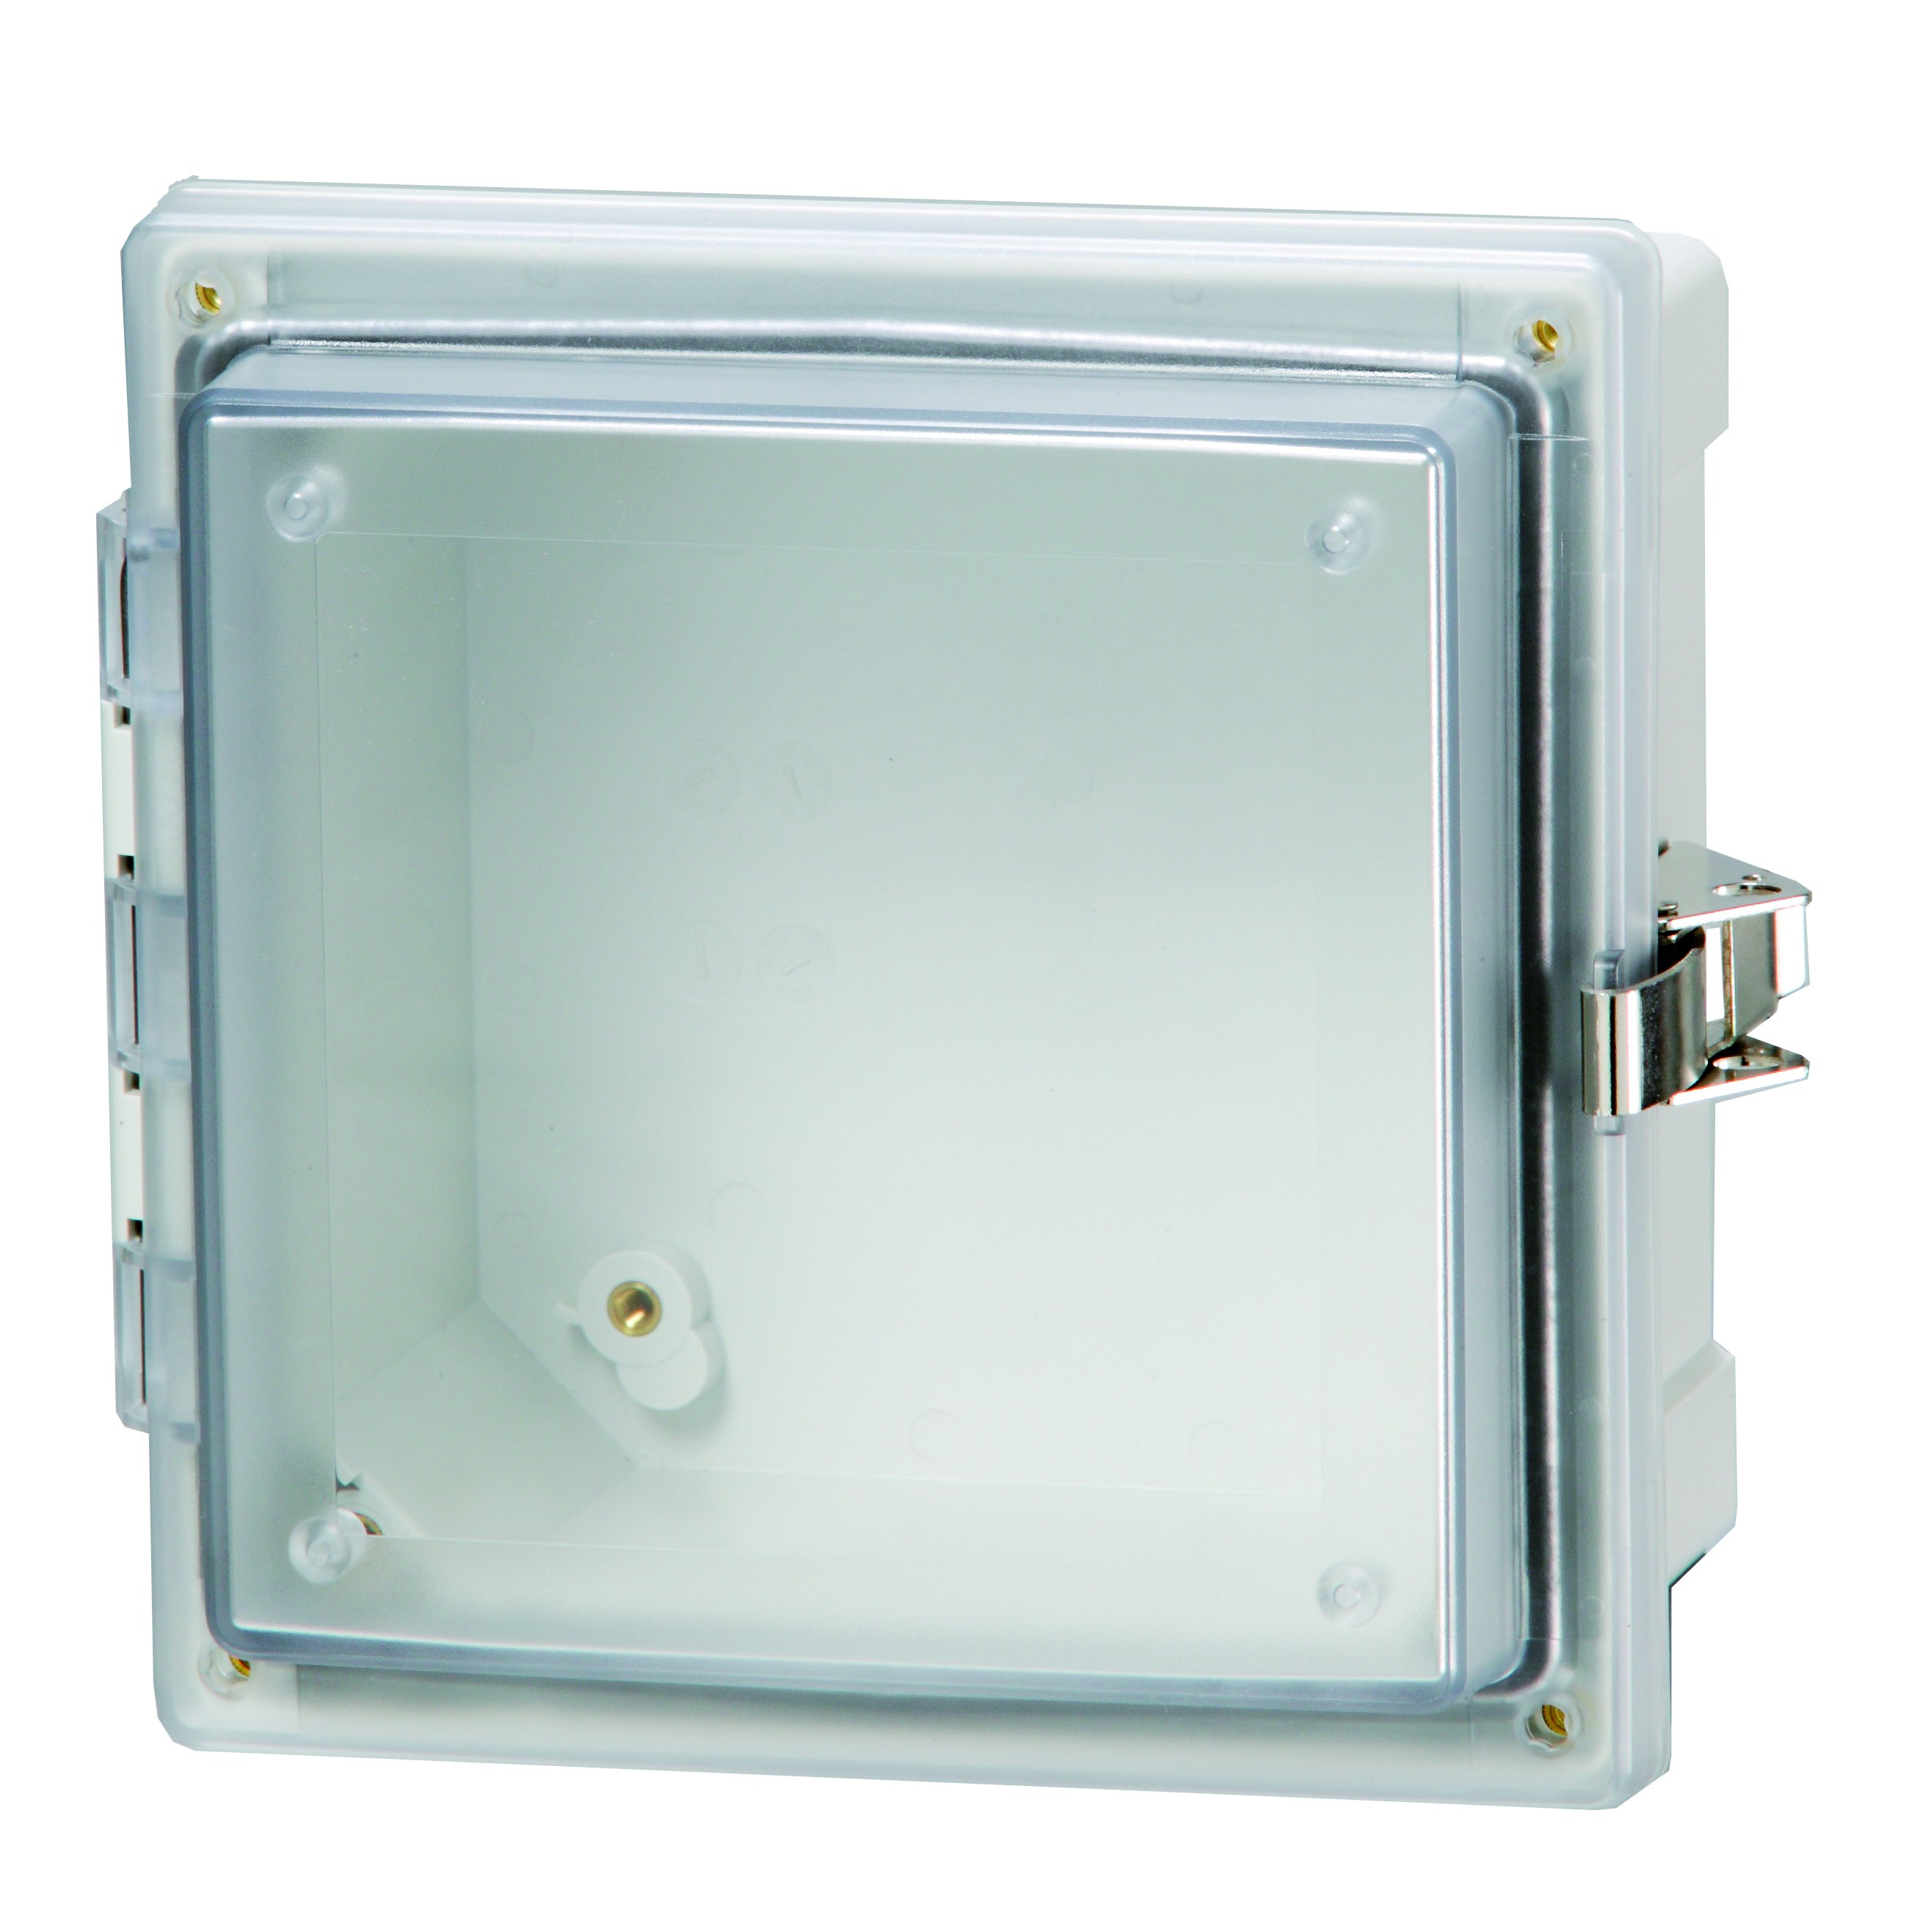 Hinged transparent enclosure